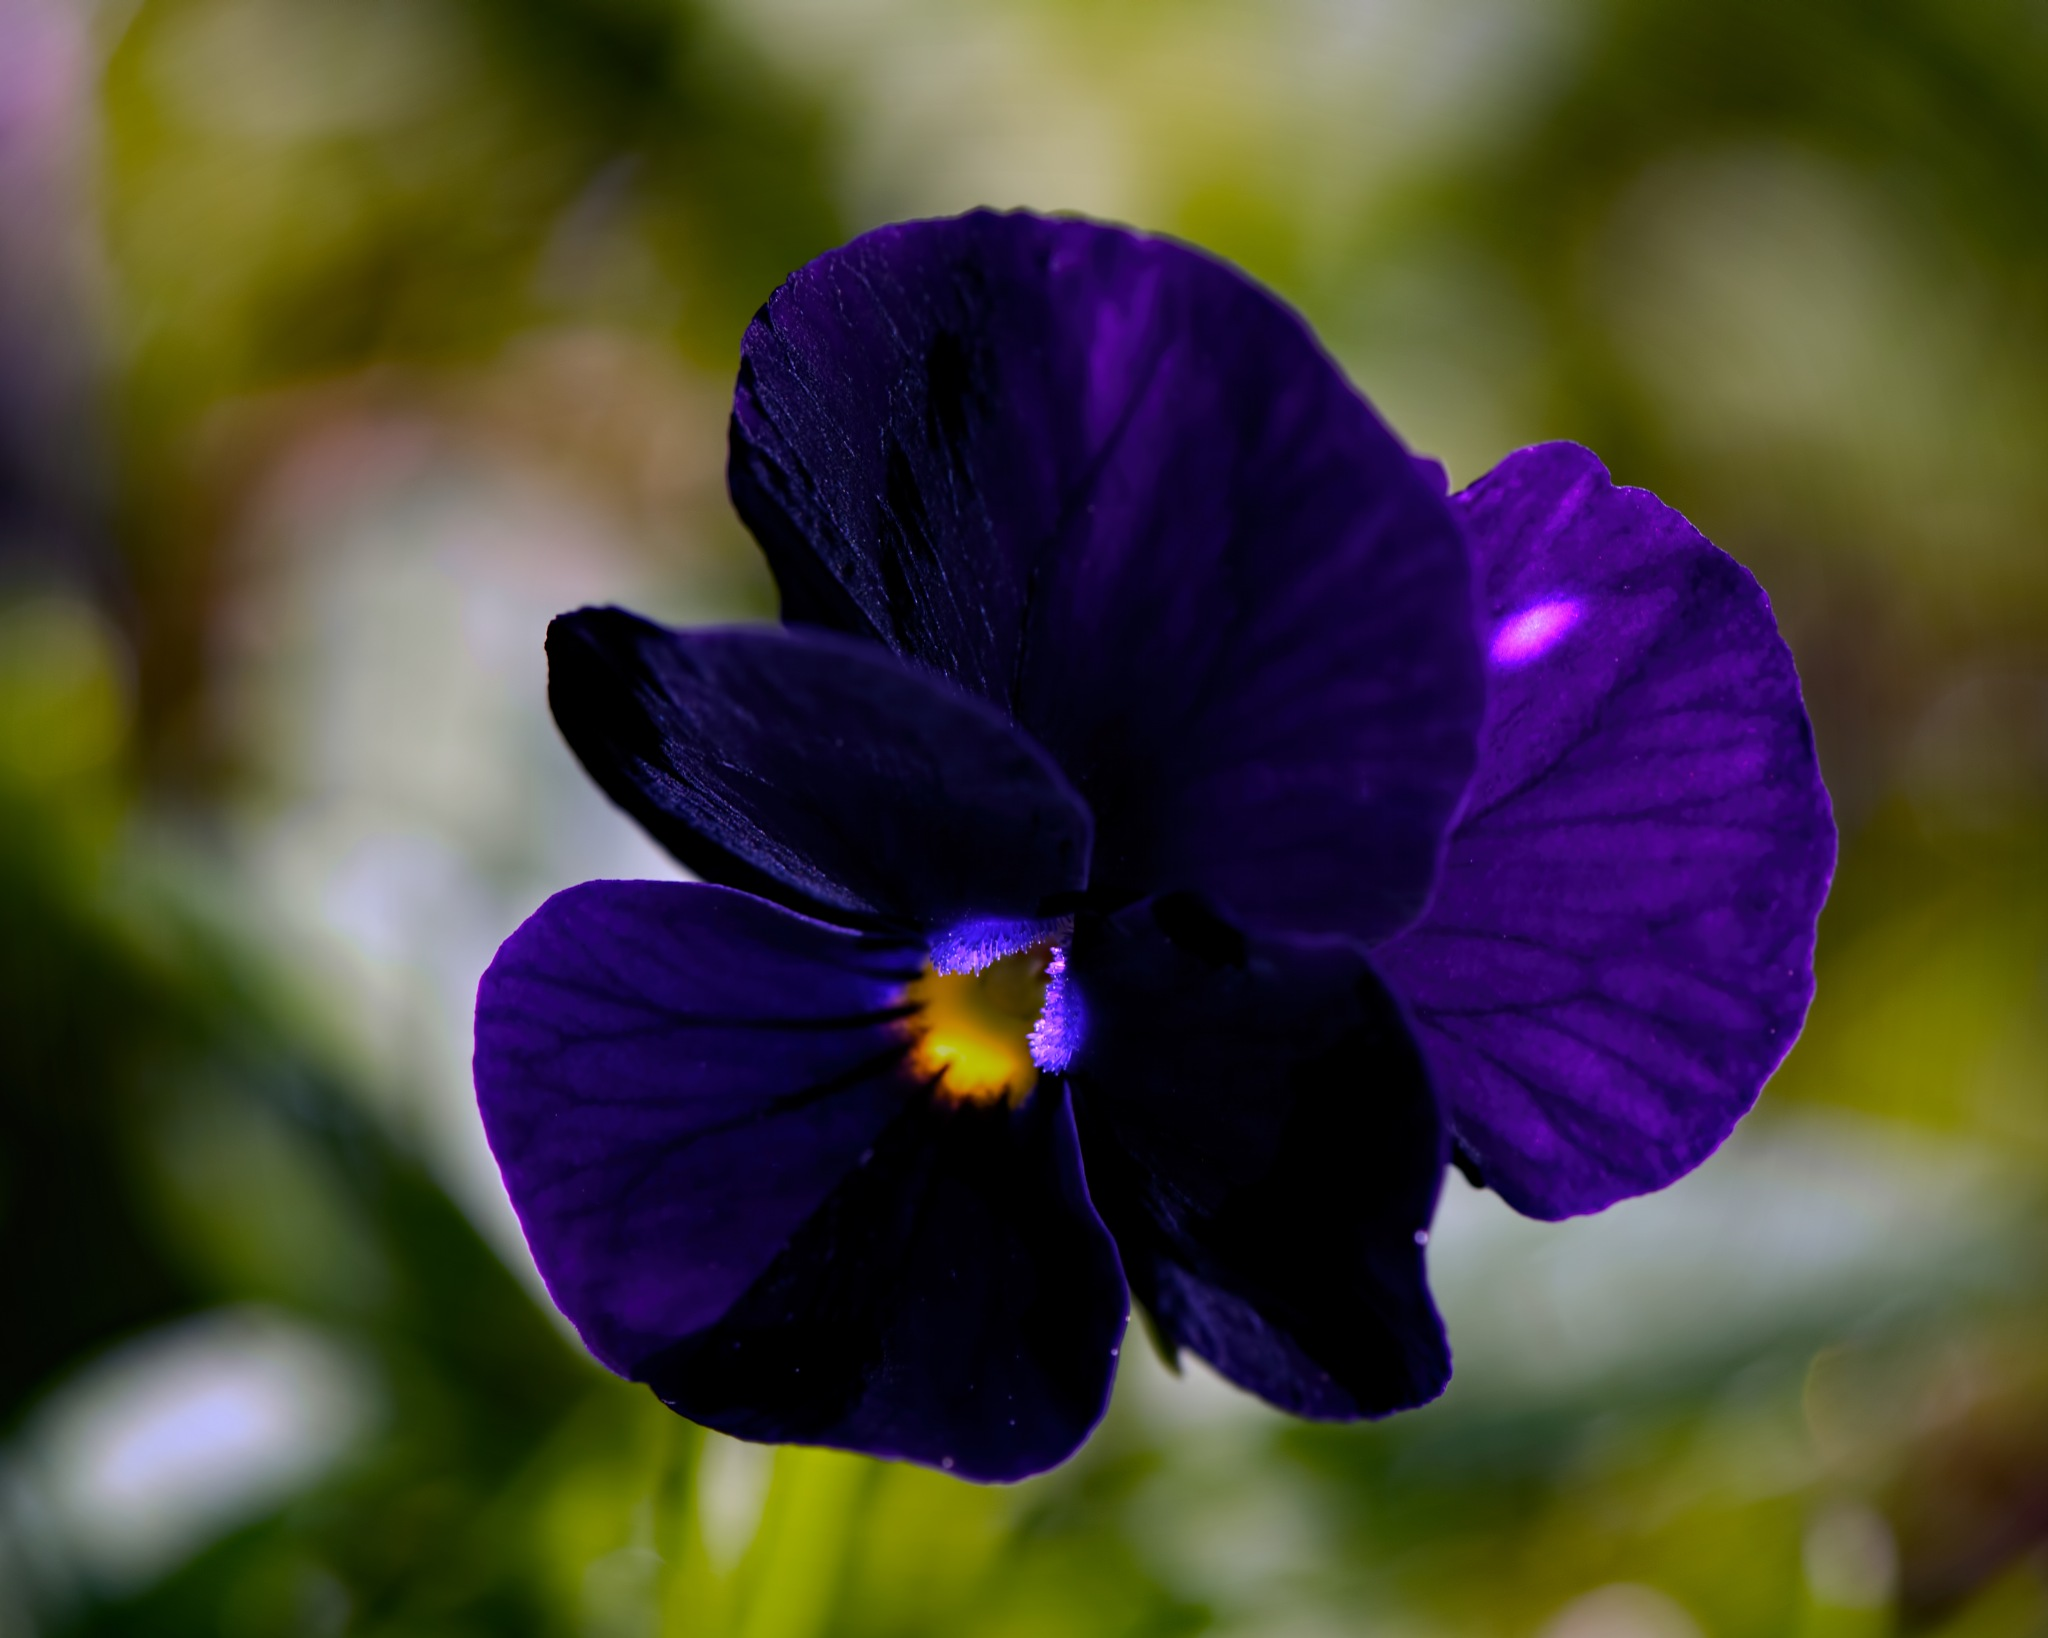 Volunteer Pansy 0525 by ThomasJerger